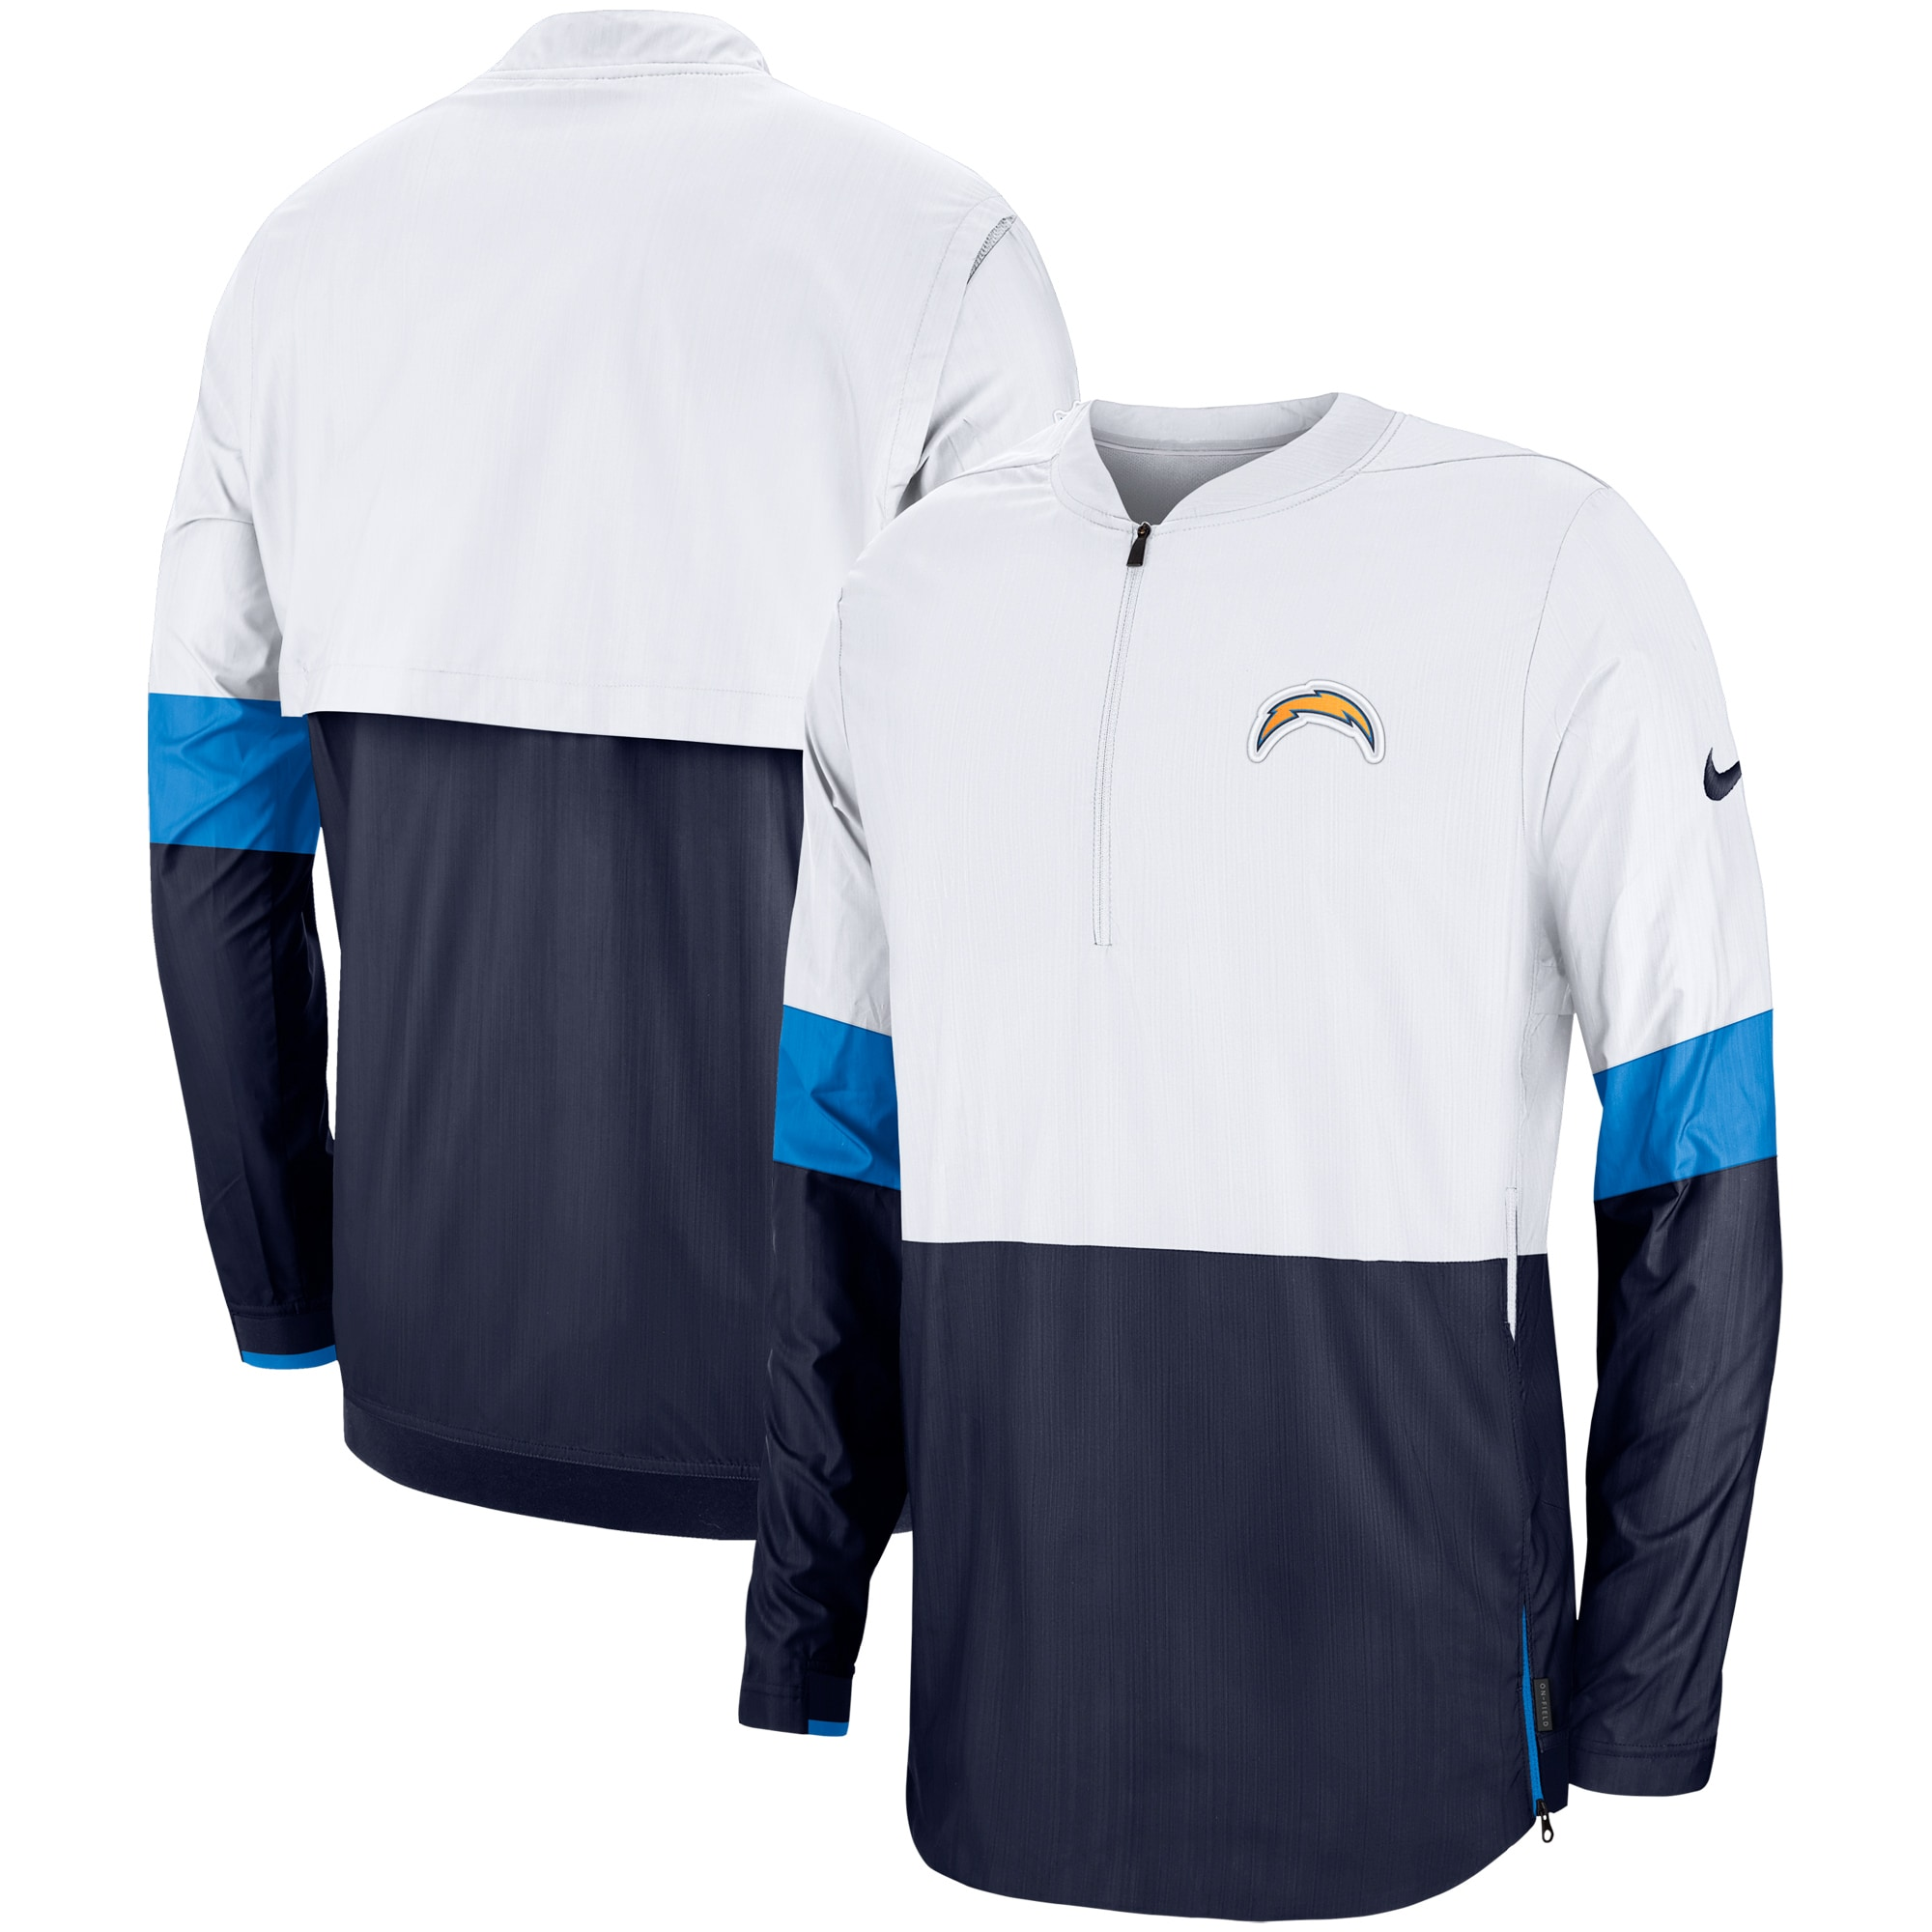 Los Angeles Chargers Nike Sideline Coaches Half-Zip Pullover Jacket - White/Navy